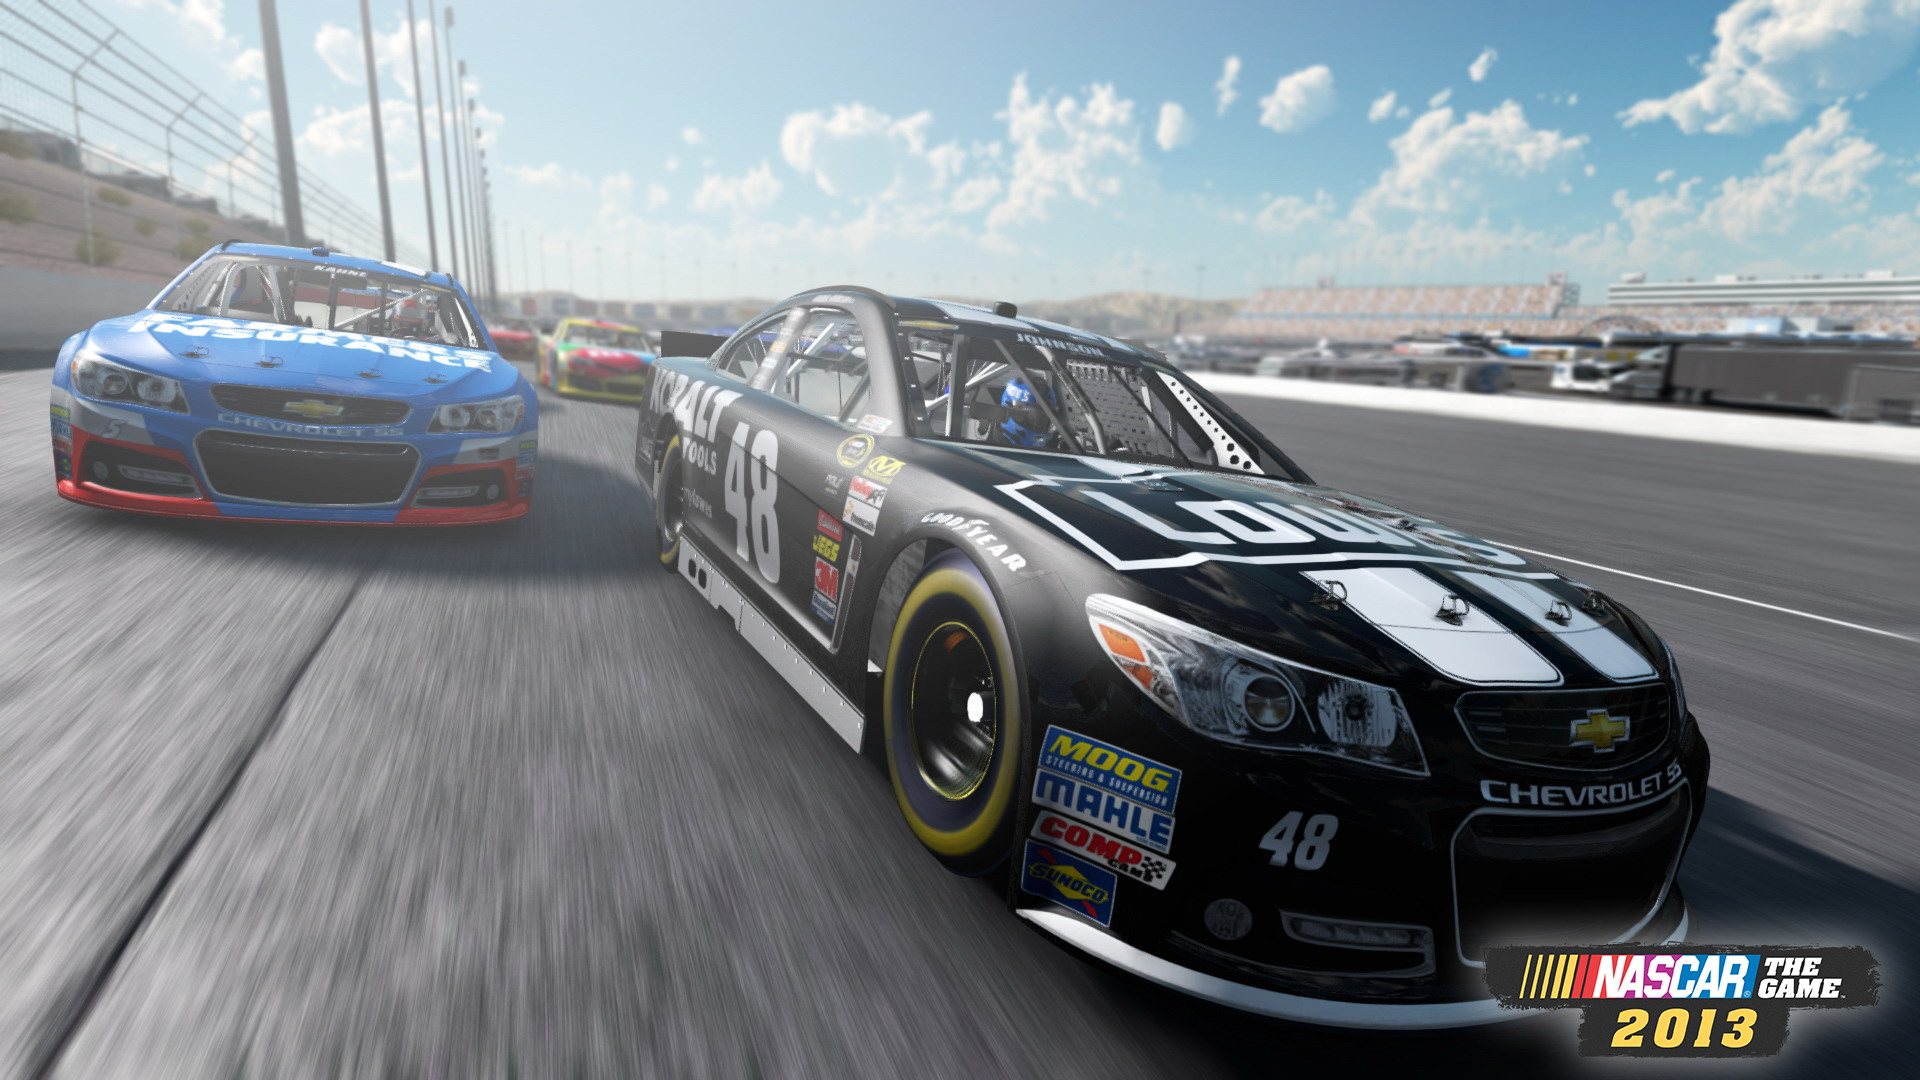 Nascar The Game 2013 Adds Summerheat And Homestead